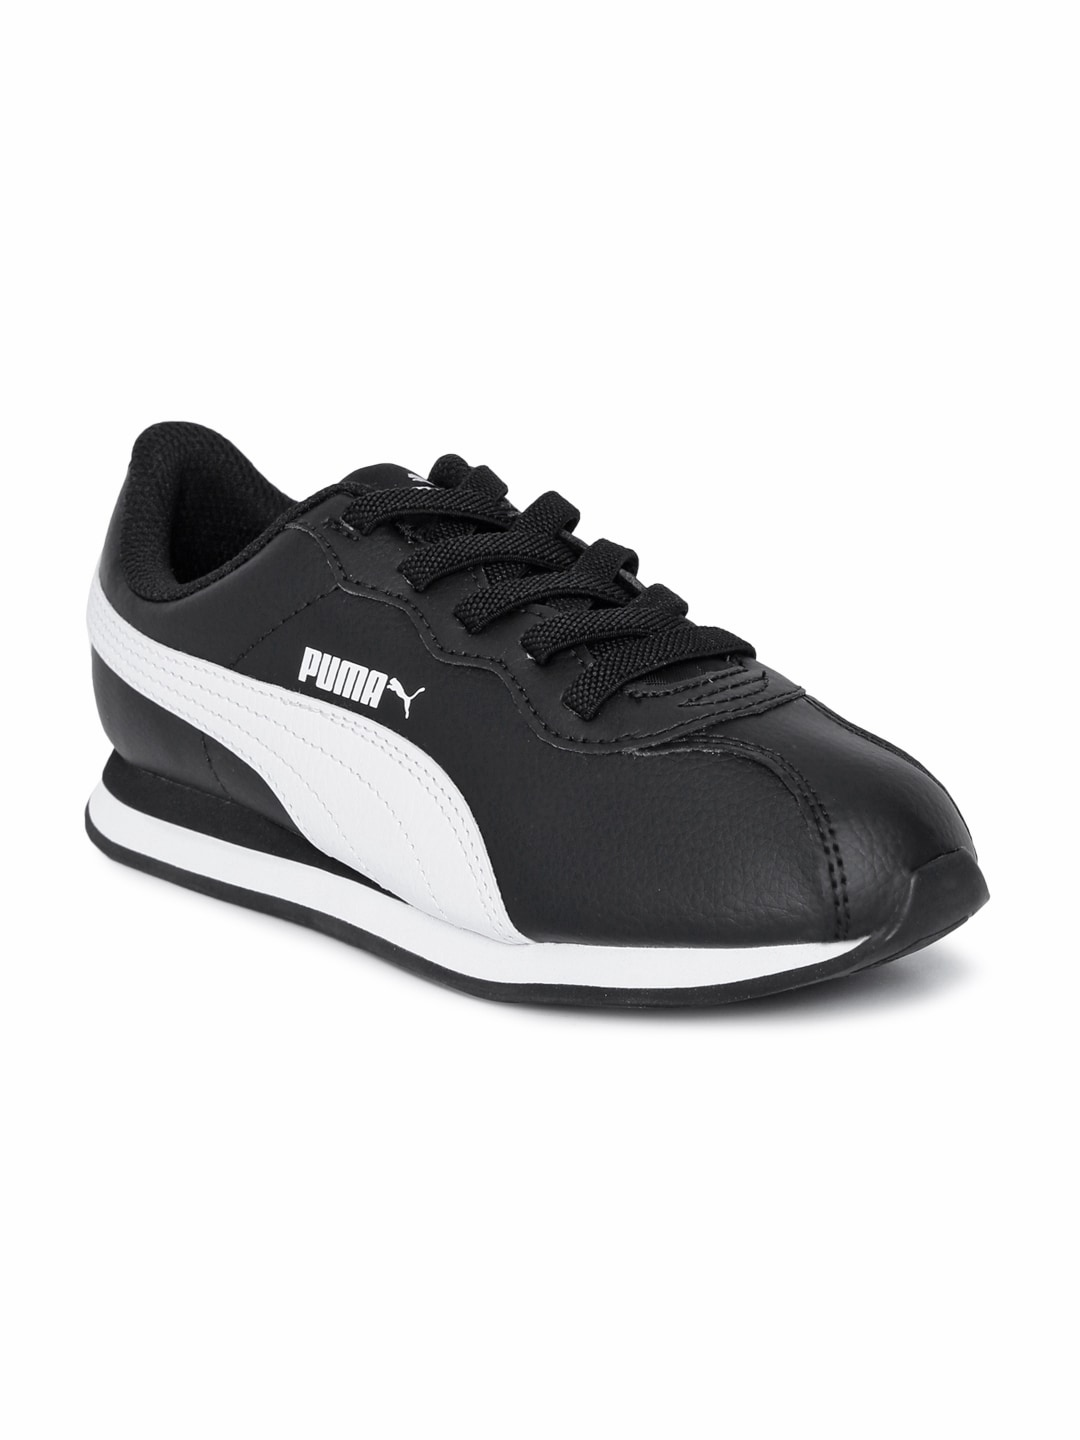 Kids Ps Ac Puma Leather Black Ii Sneakers Turin uXTikZOP